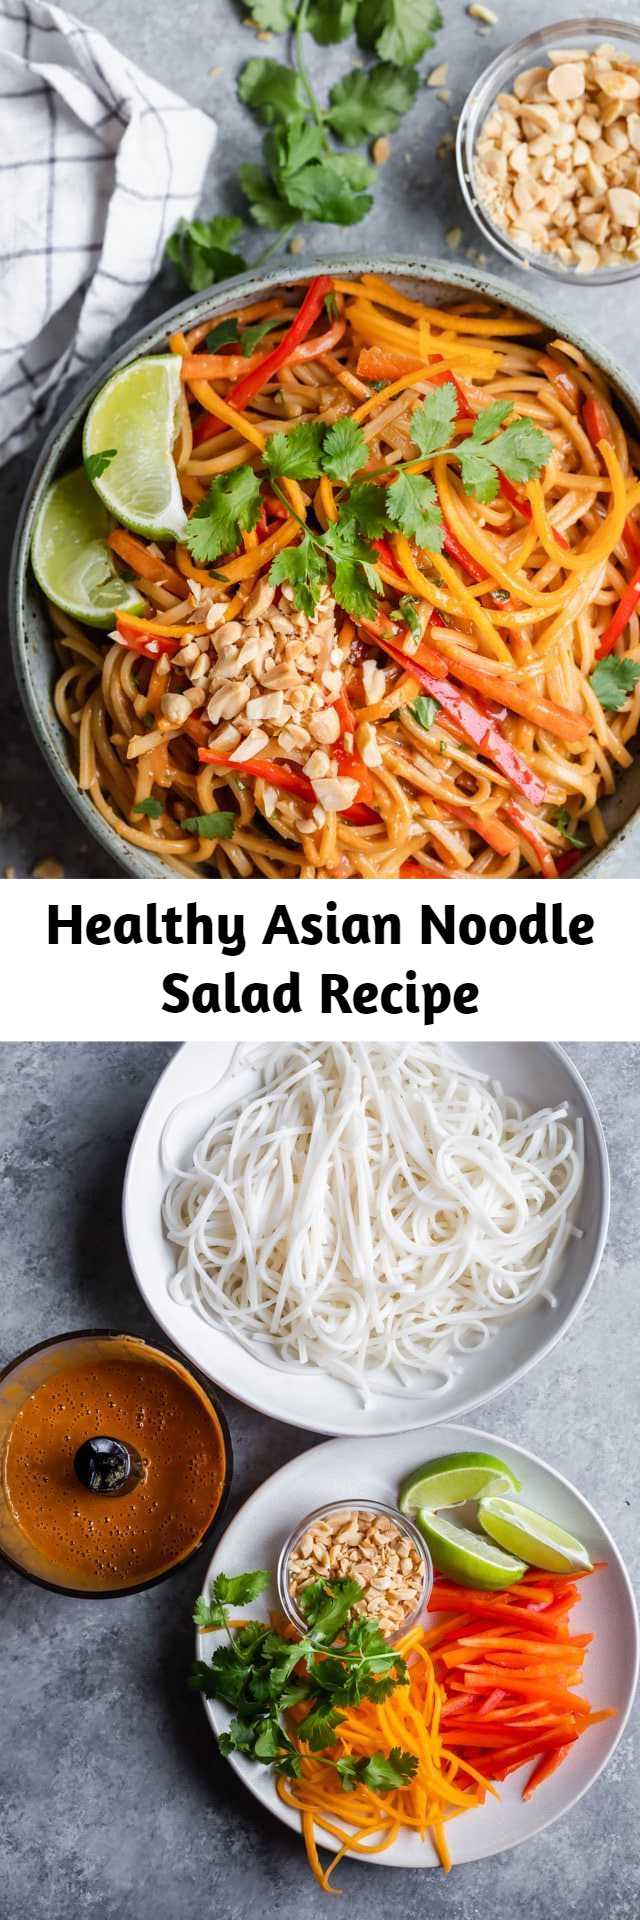 Healthy Asian Noodle Salad Recipe - This bright and colorful Asian Noodle Salad is a gluten-free vegan meal that's filled with fresh vegetables and tossed in a spicy creamy nutty dressing #noodles #asianfood #healthyrecipes #salad